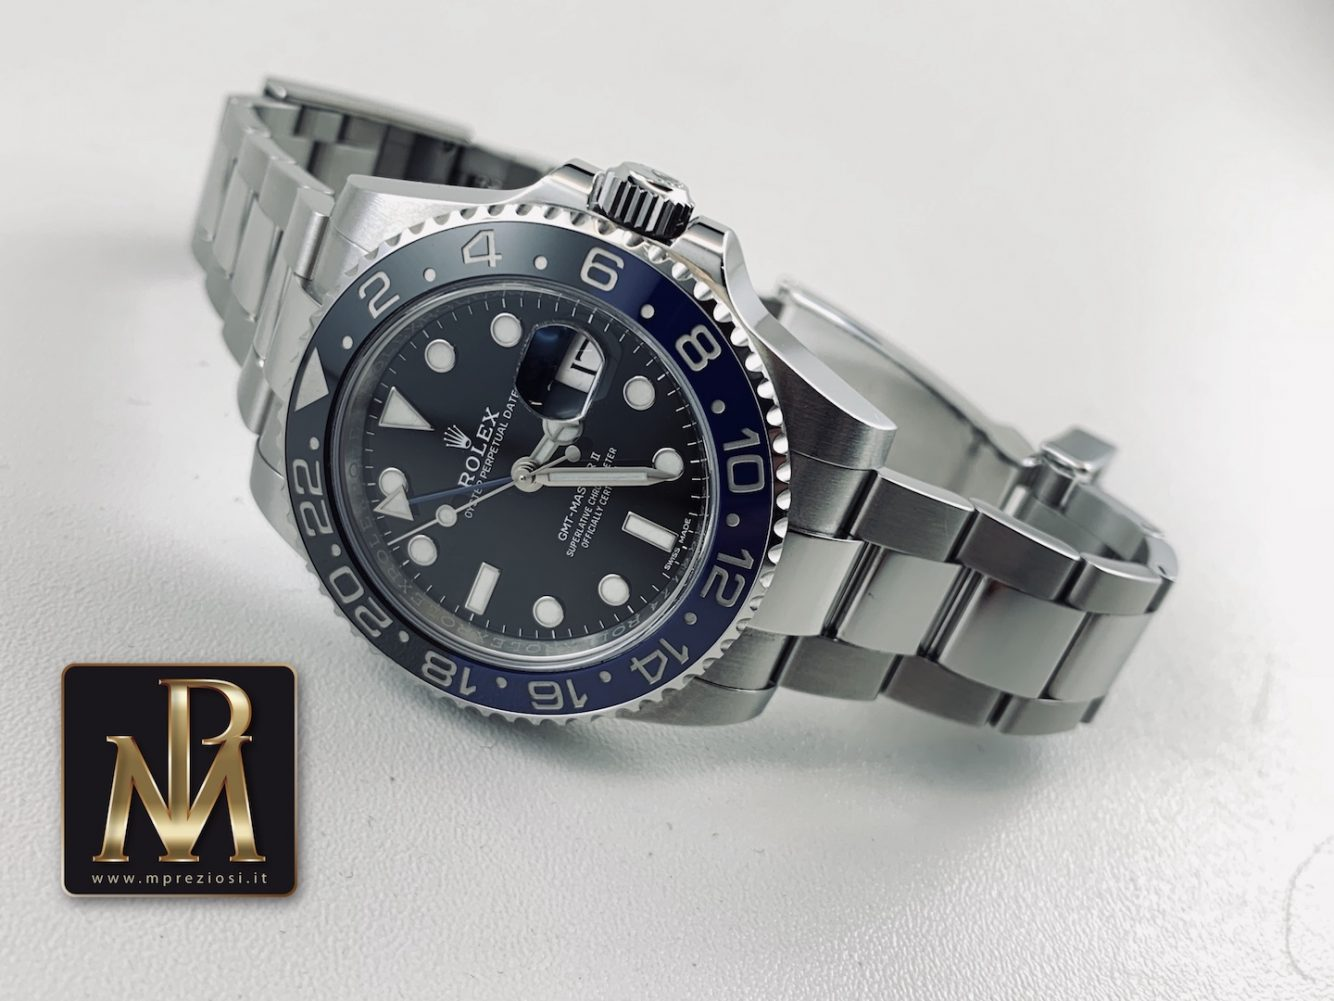 Rolex-gmt-master-II-blnr-batman-116710-mp-preziosi-orologi-mpreziosi.it